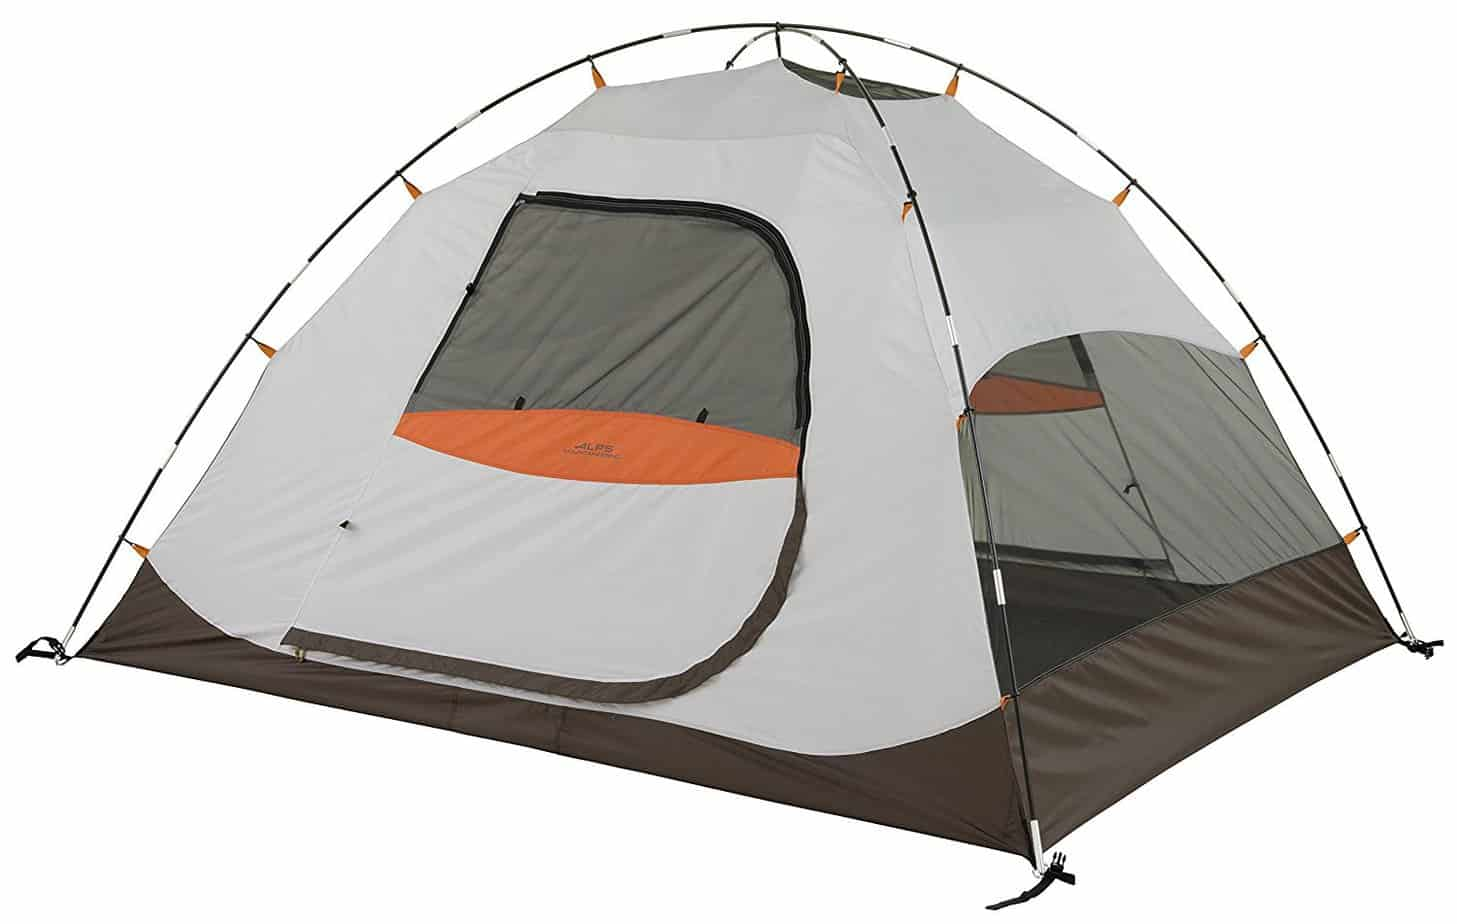 tent | wedding gifts for travel couples